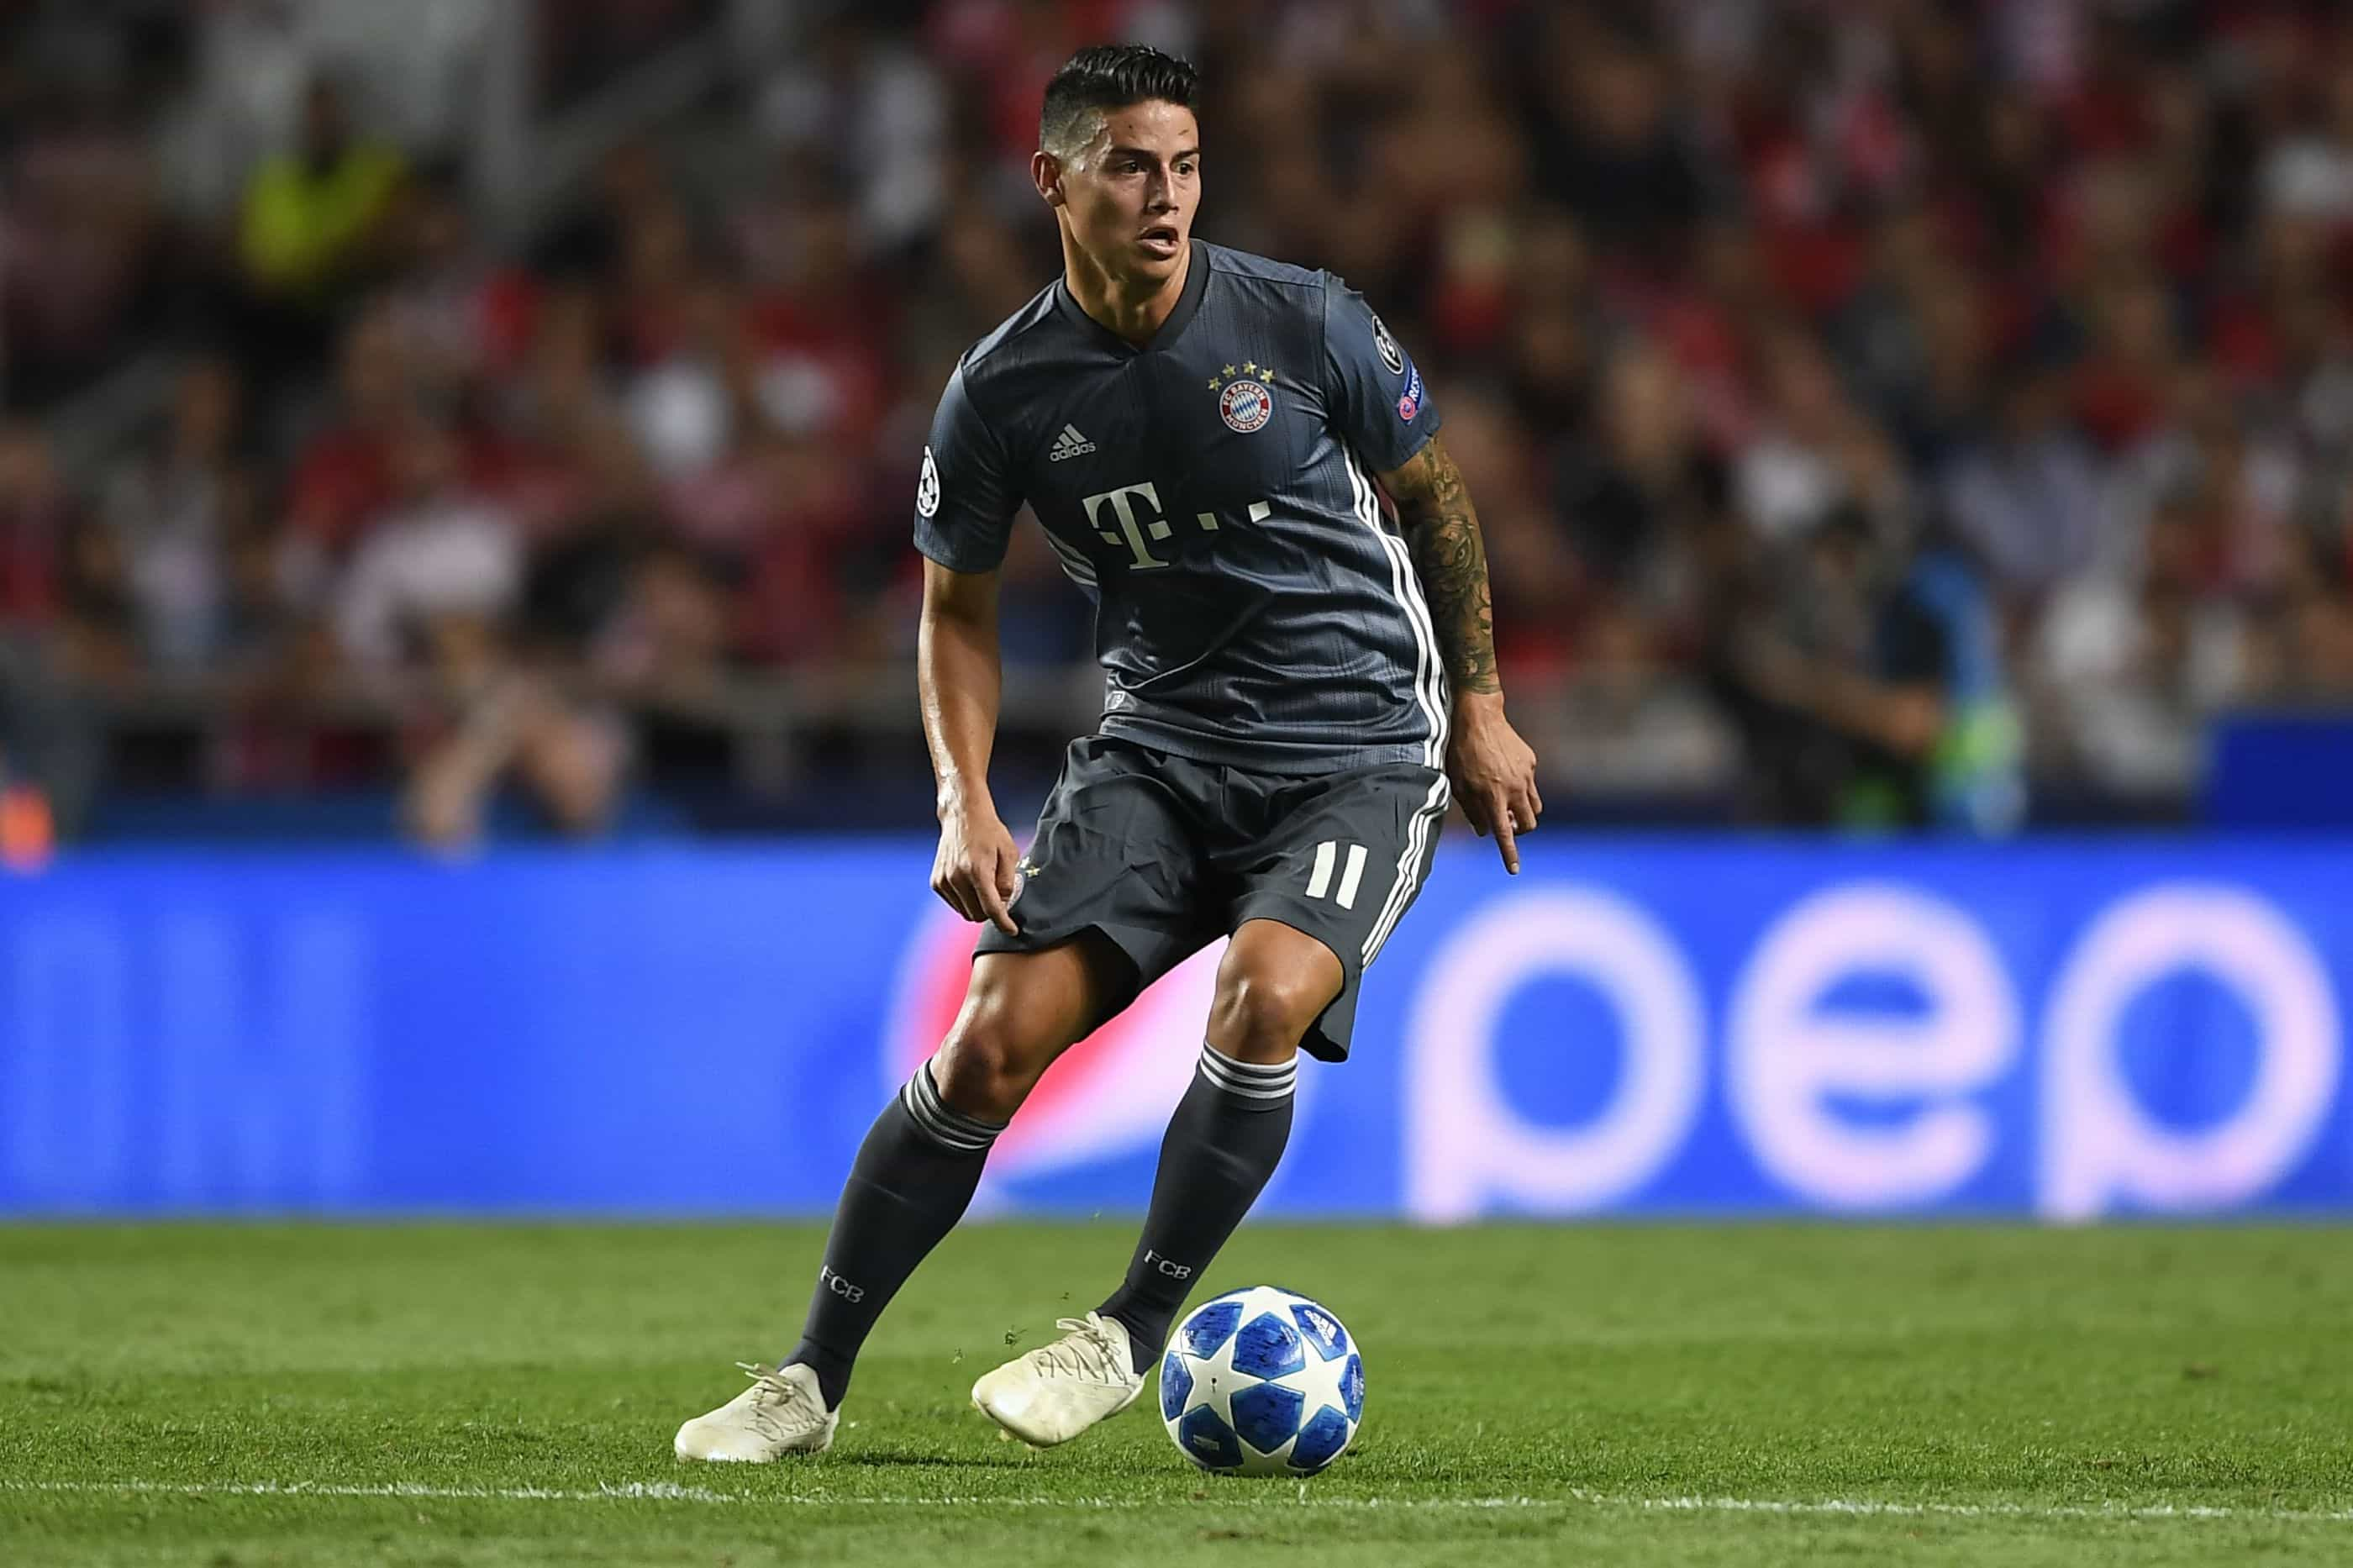 James protagonista de nova polémica no Bayern Munique